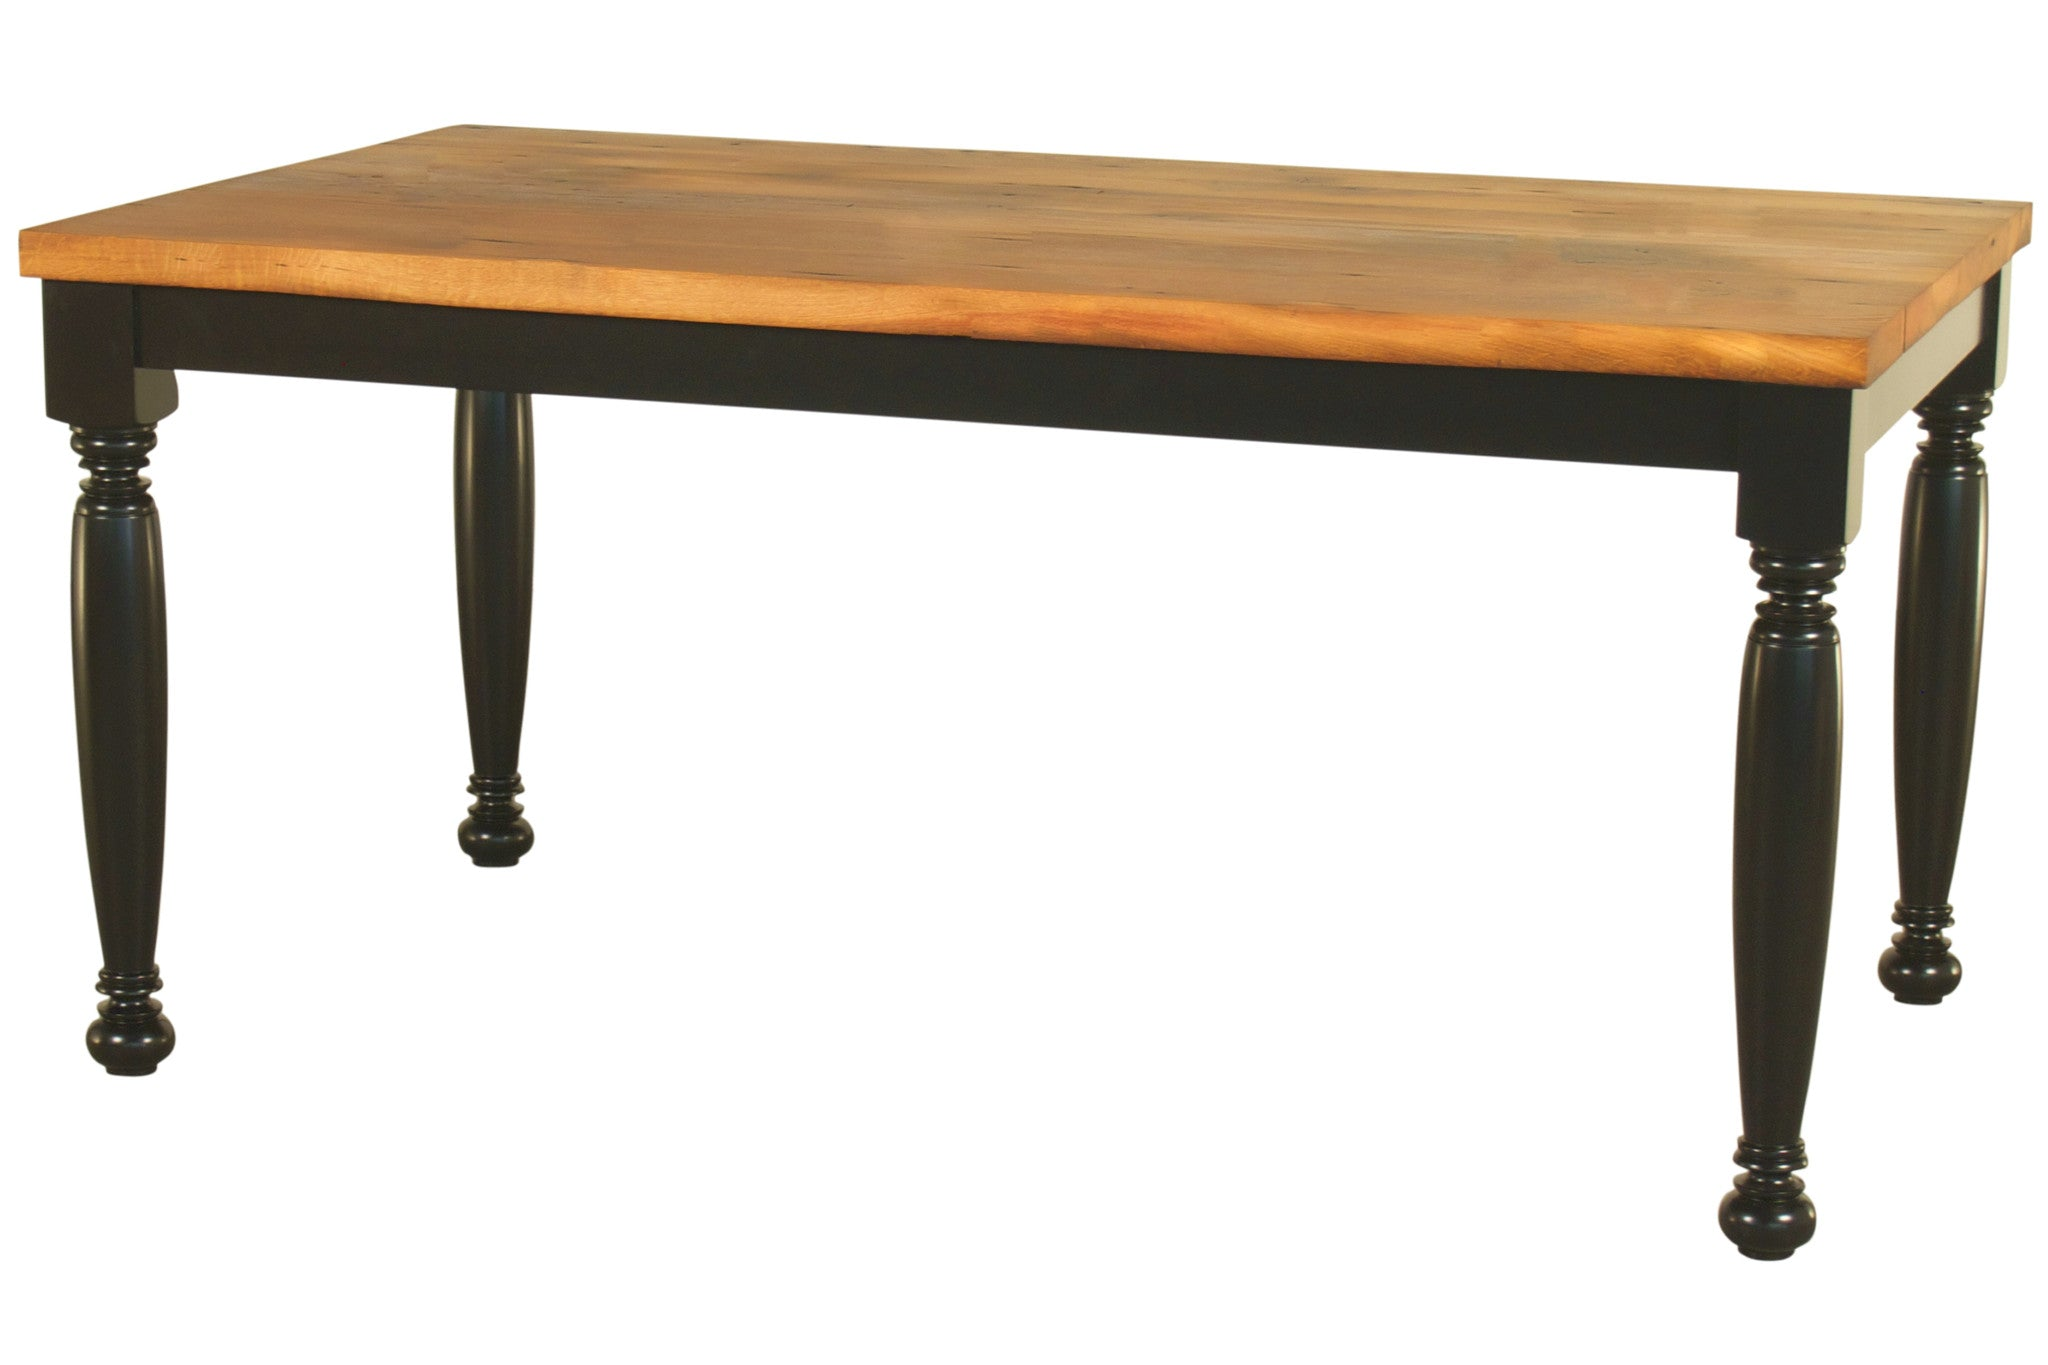 Boston Old Oak Farmhouse TableAmerican made Handcrafted Dining Tables   Homespun Design. Farmhouse Dining Table Made In Usa. Home Design Ideas